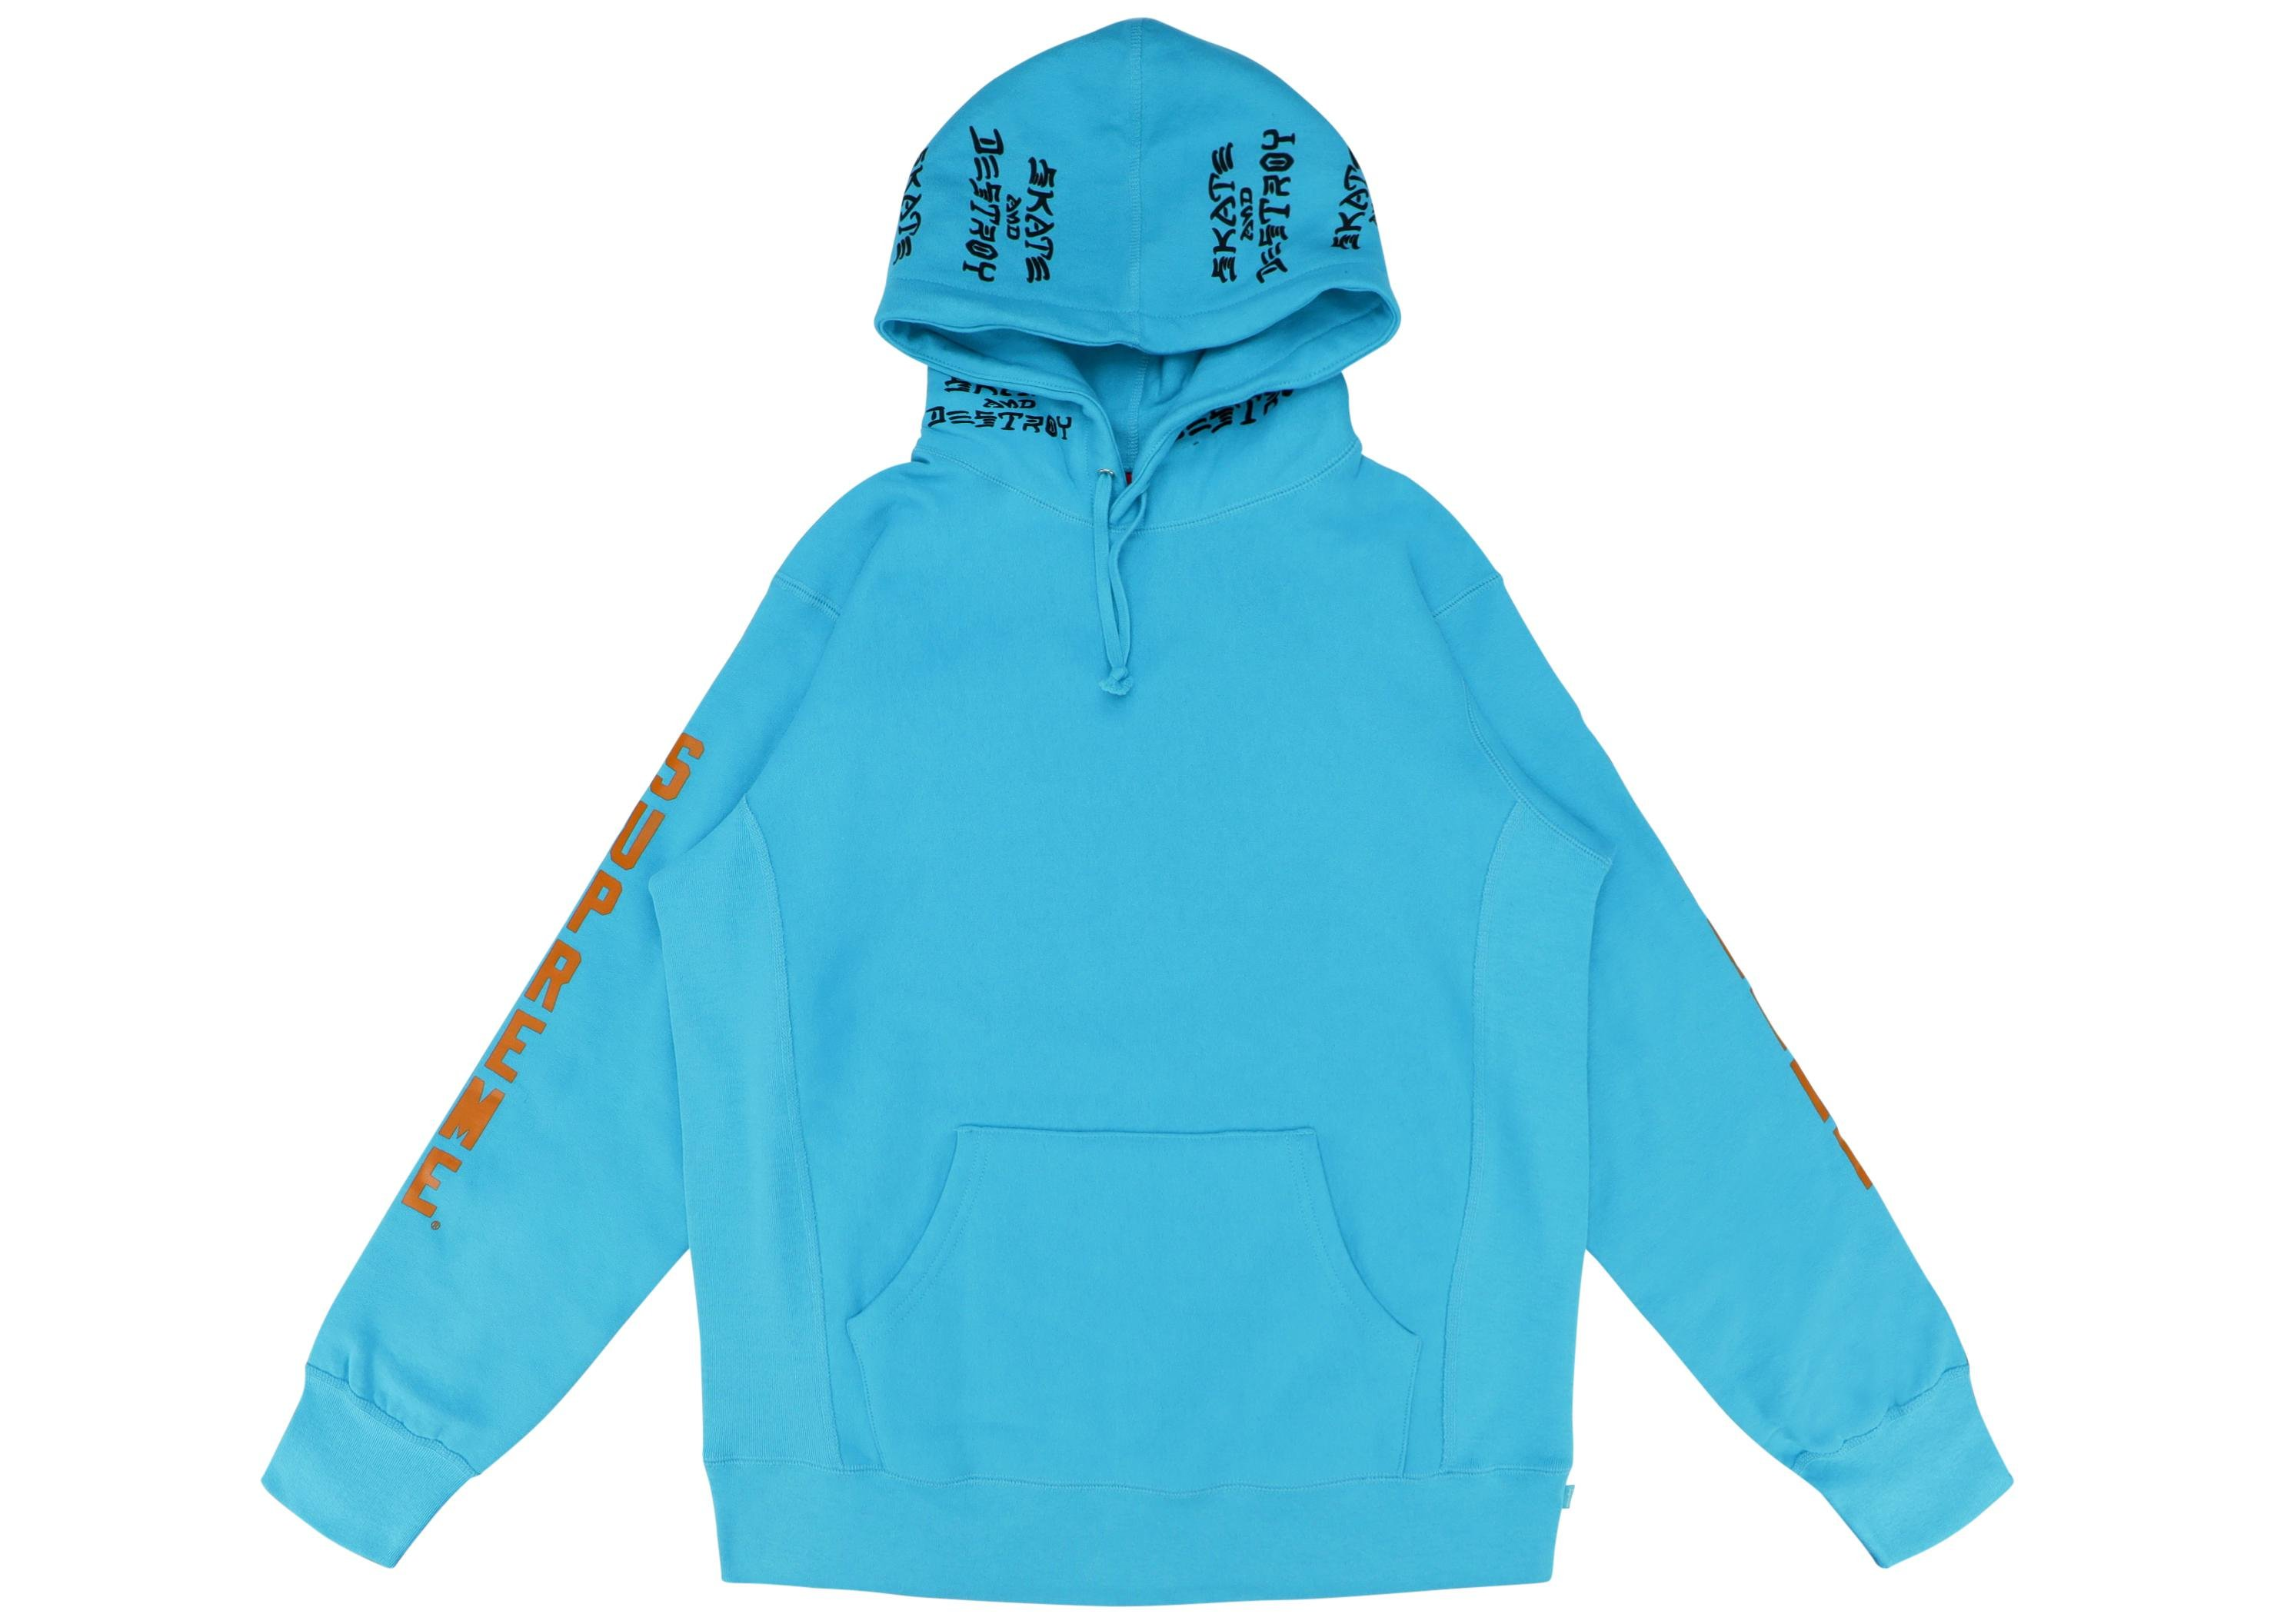 66ab7093322 Lyst - Supreme Thrasher Boyfriend Hooded Sweatshirt Light Aqua in ...